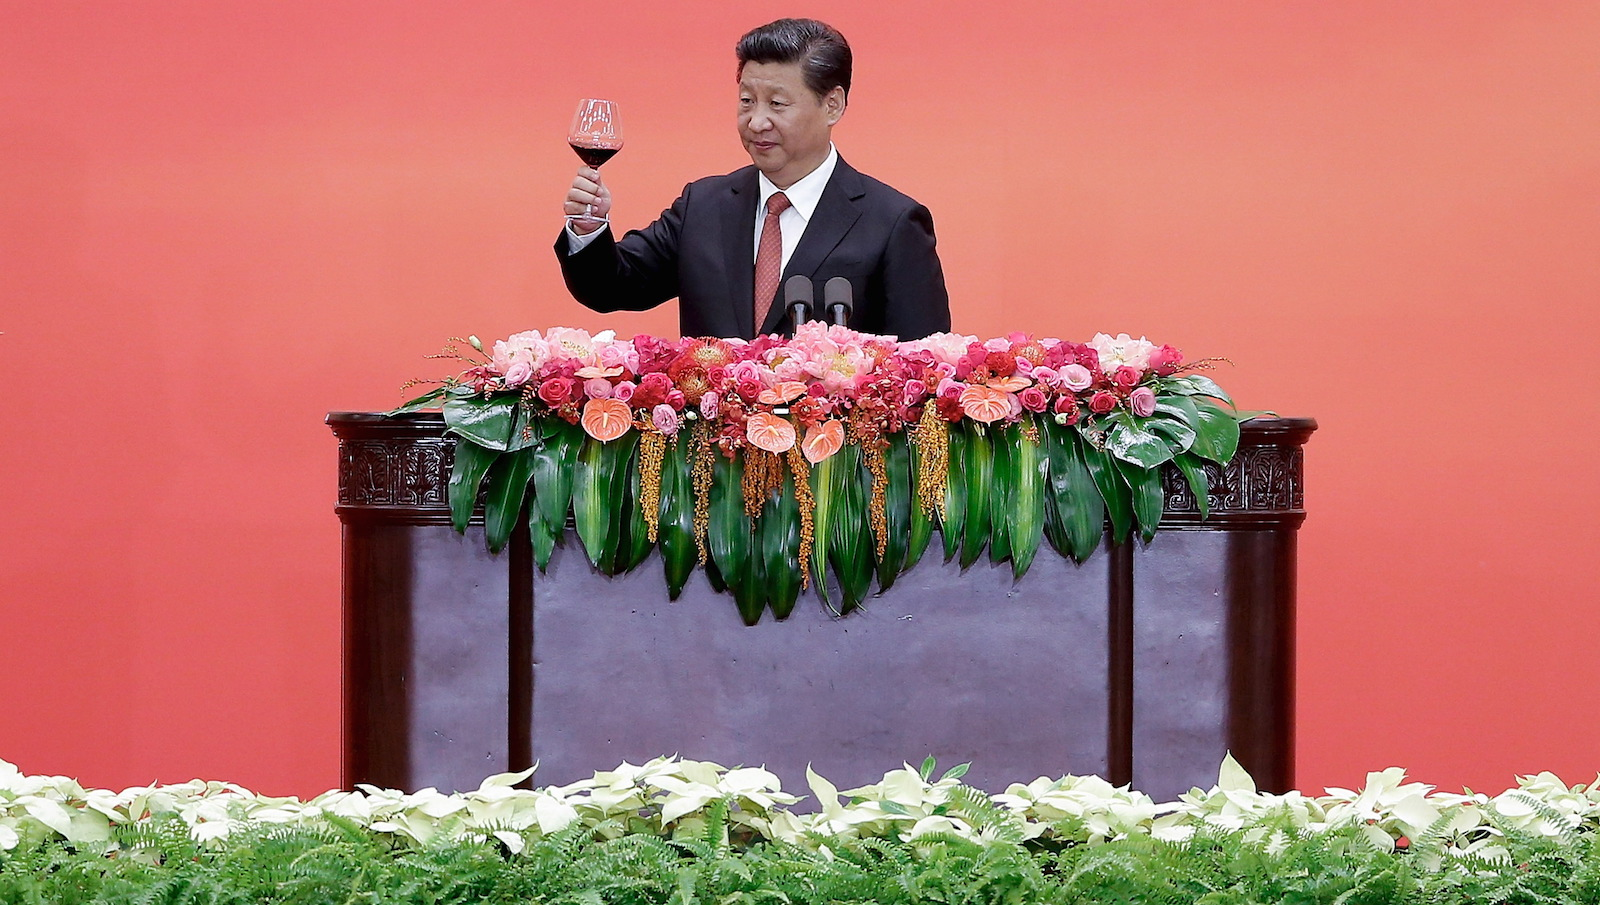 Chinese President Xi Jinping raises a toast to guests after speaking during a reception commemorating 70th anniversary of the end of World War Two, at the Great Hall Of The People in Beijing September 3, 2015. REUTERS/ Lintao Zhang/Pool - RTX1QUYP